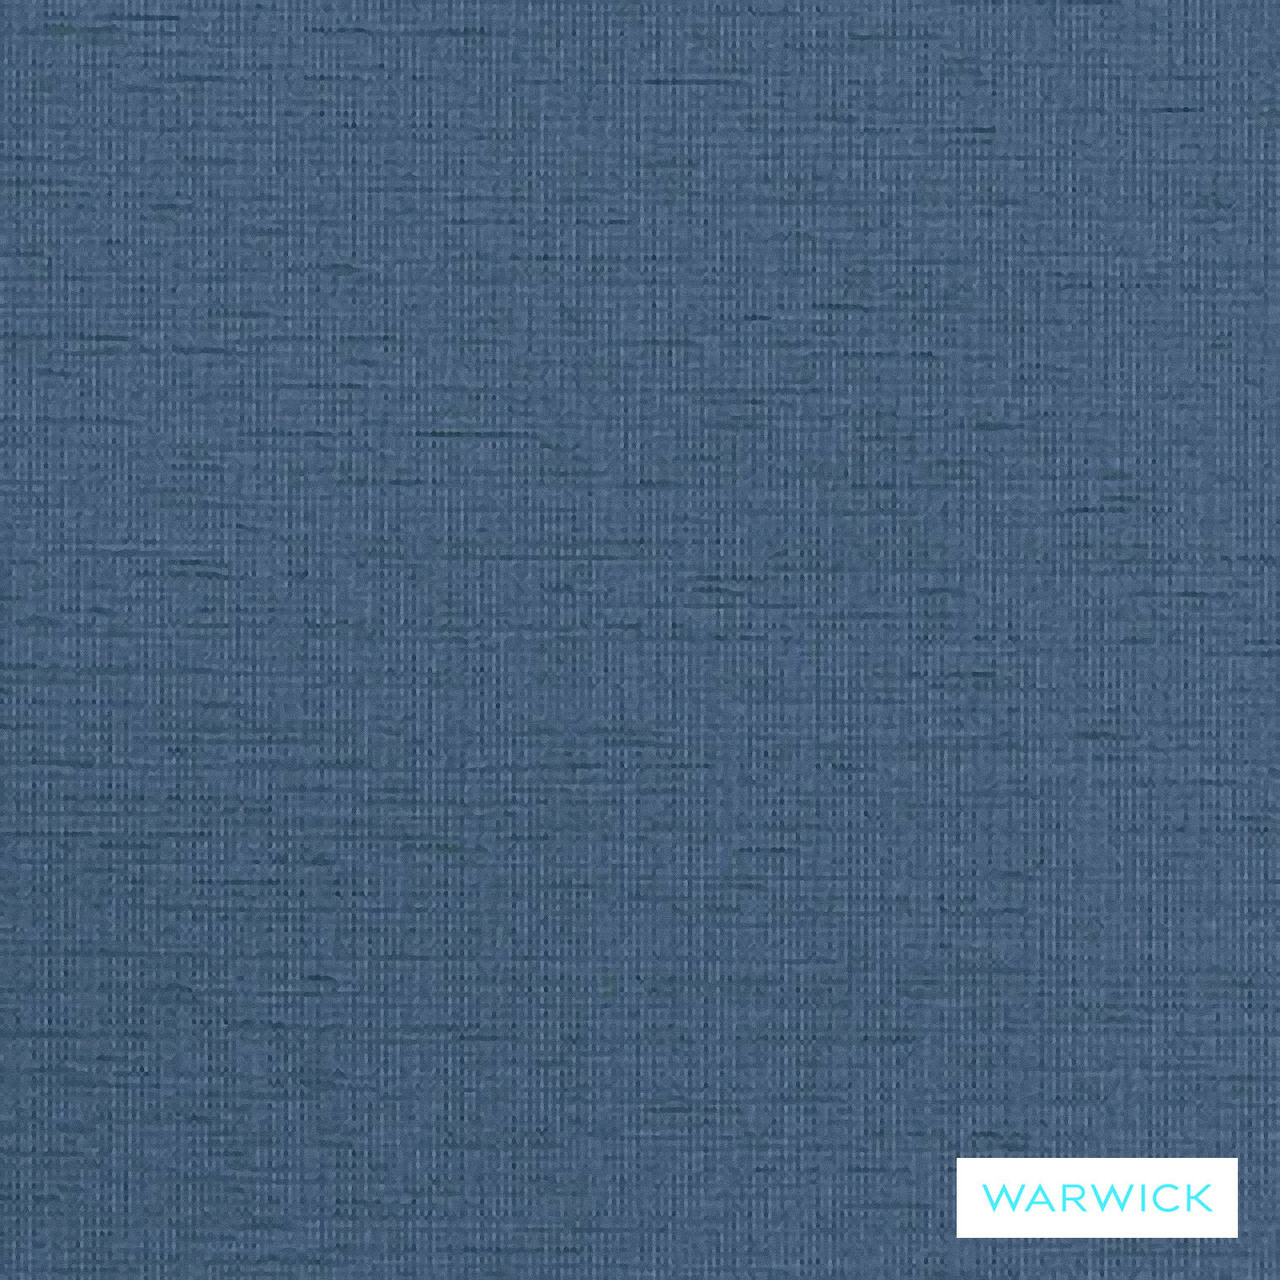 Azure' | Upholstery Fabric - Australian Made, Blue, Plain, Synthetic fibre, Washable, Commercial Use, Domestic Use, Halo